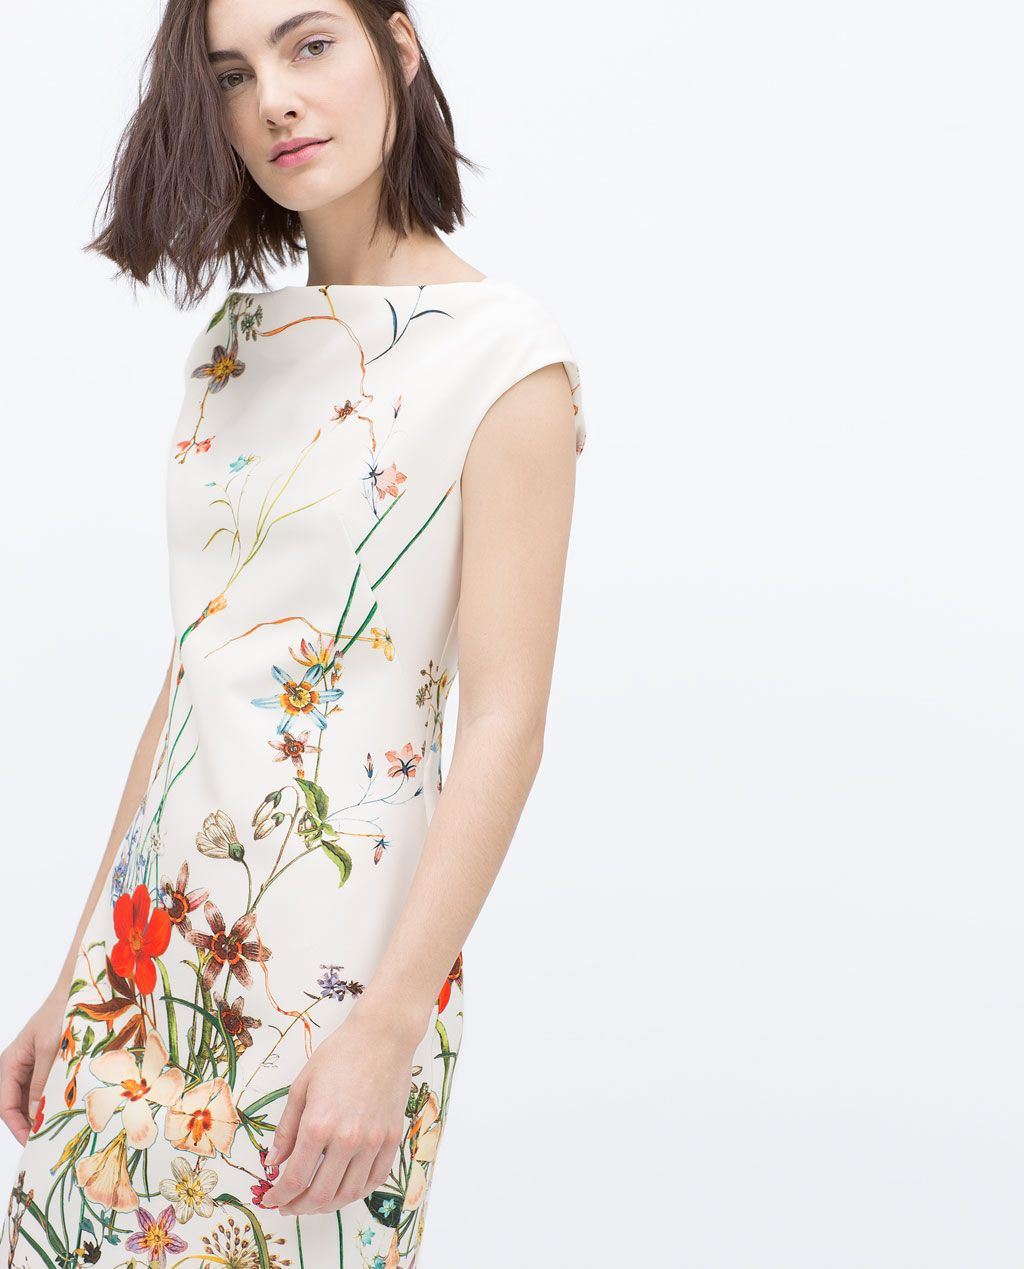 b444bc03f78 Image 2 of FLORAL PRINTED TUBE DRESS from Zara | Fashion | Dresses ...